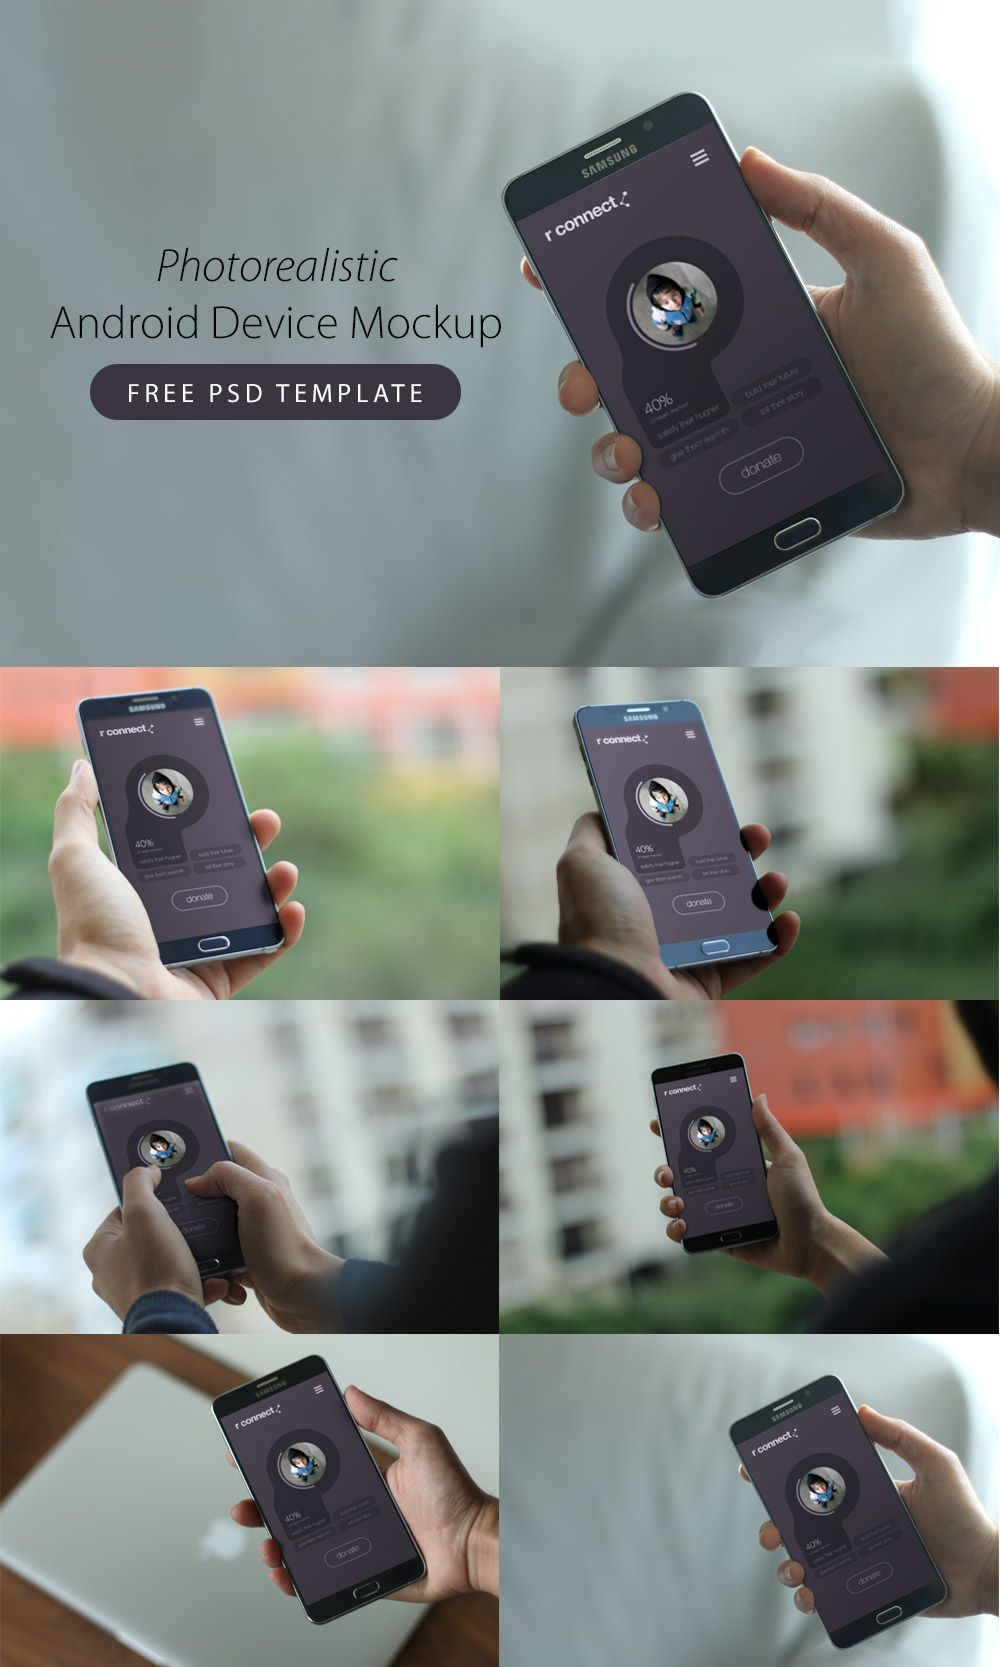 Download Photorealistic Android Device Mockup Free PSD